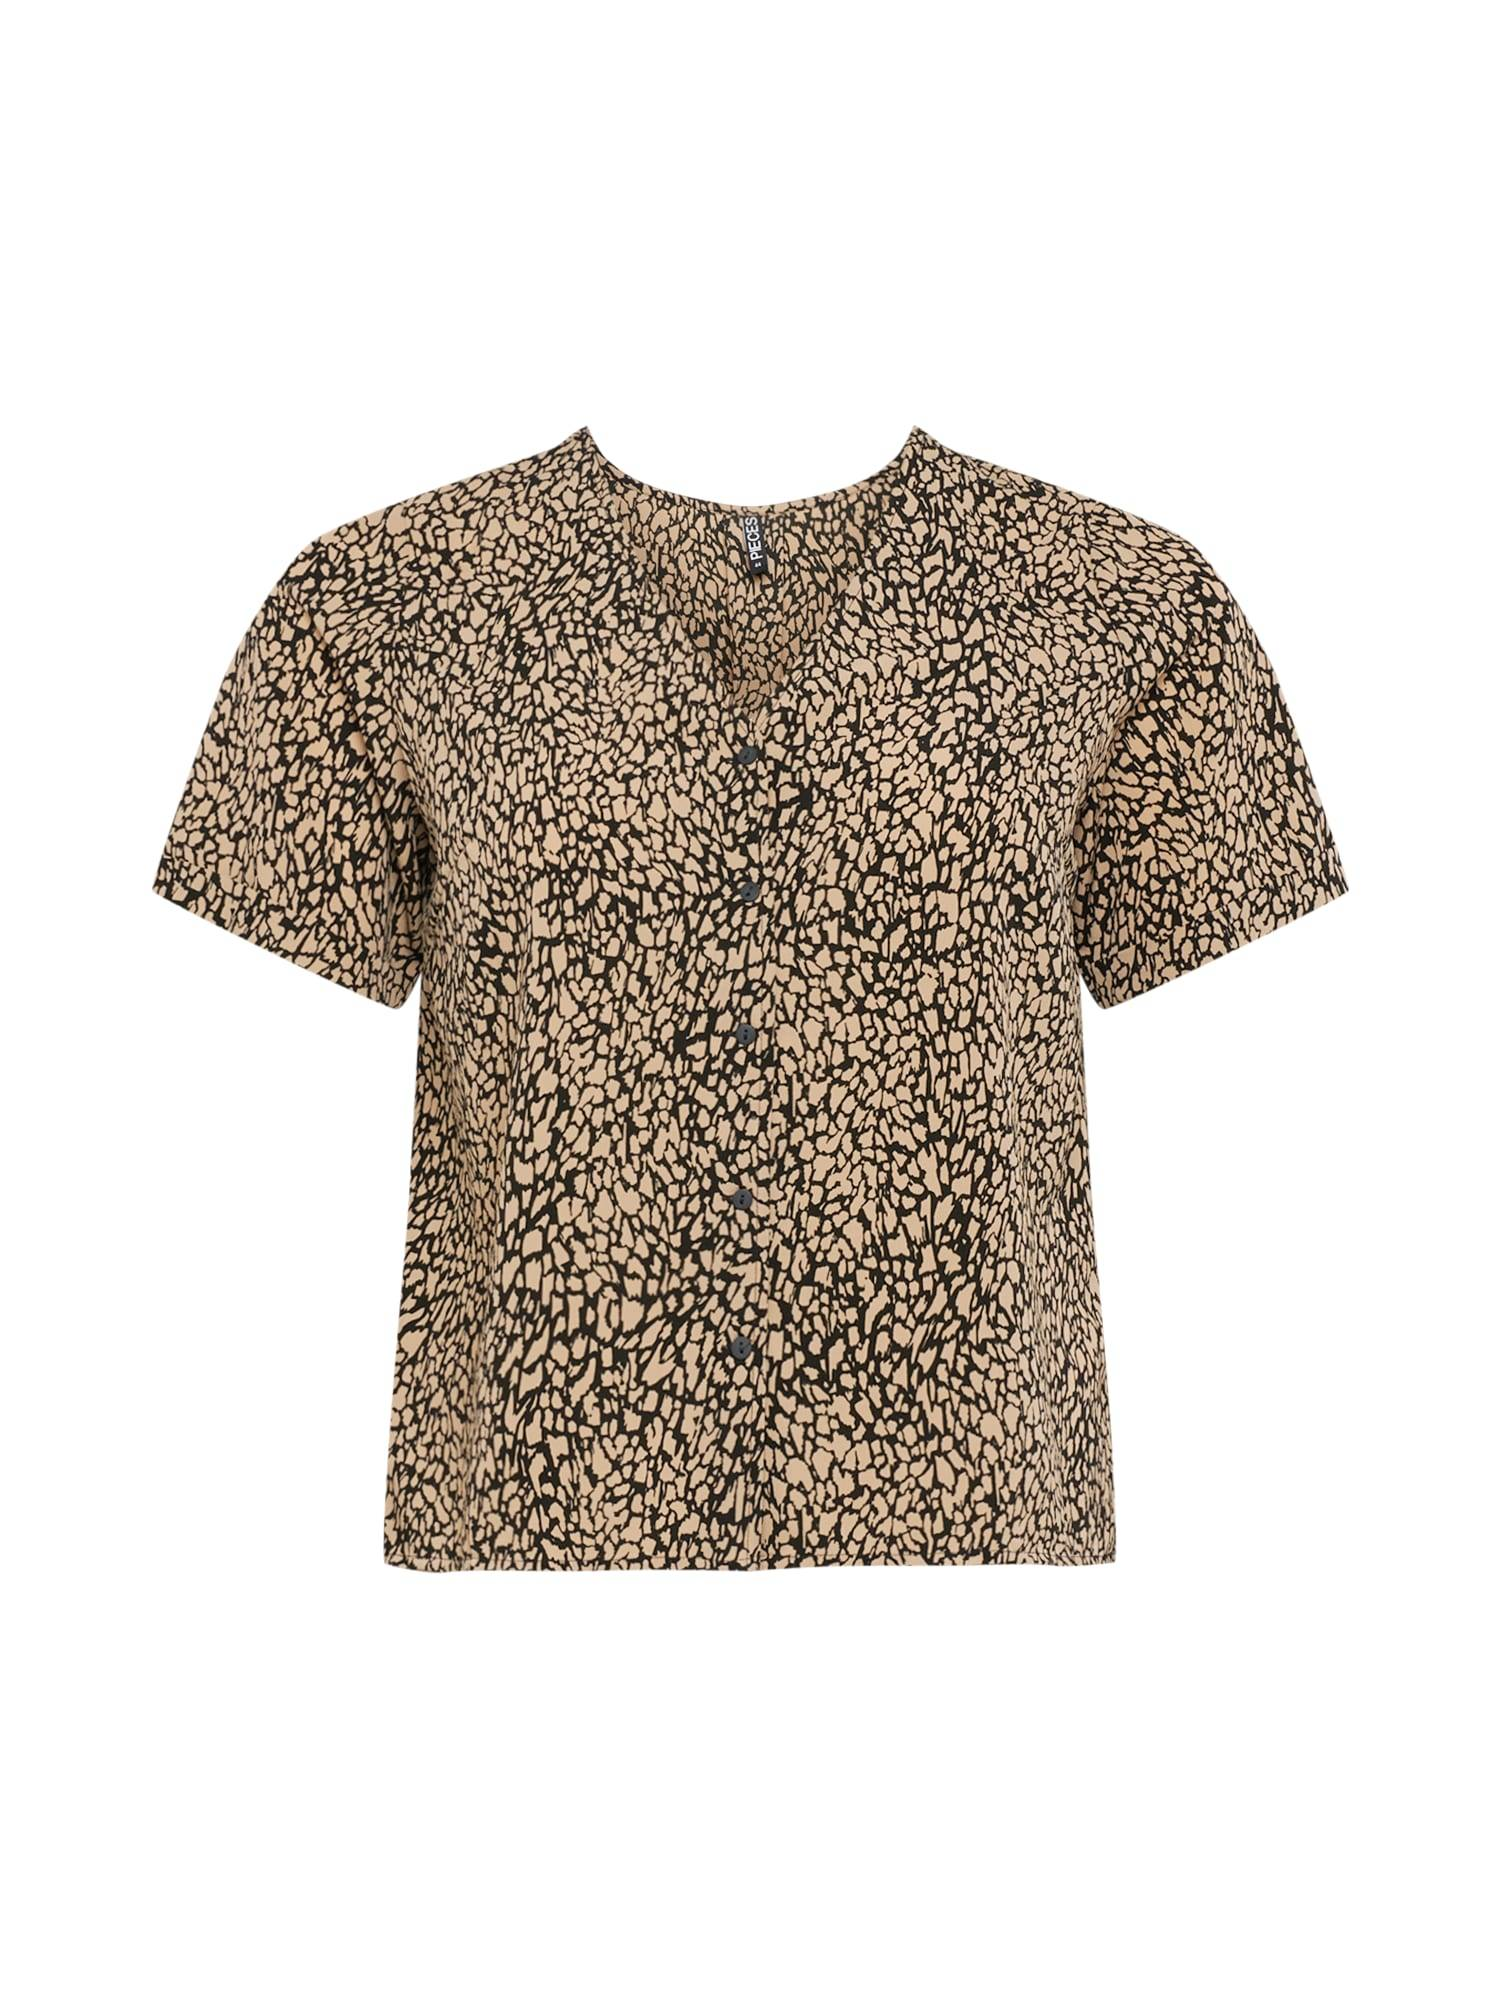 PIECES (Curve) T-shirt 'GILBERTA'  - Noir - Taille: 48 - female